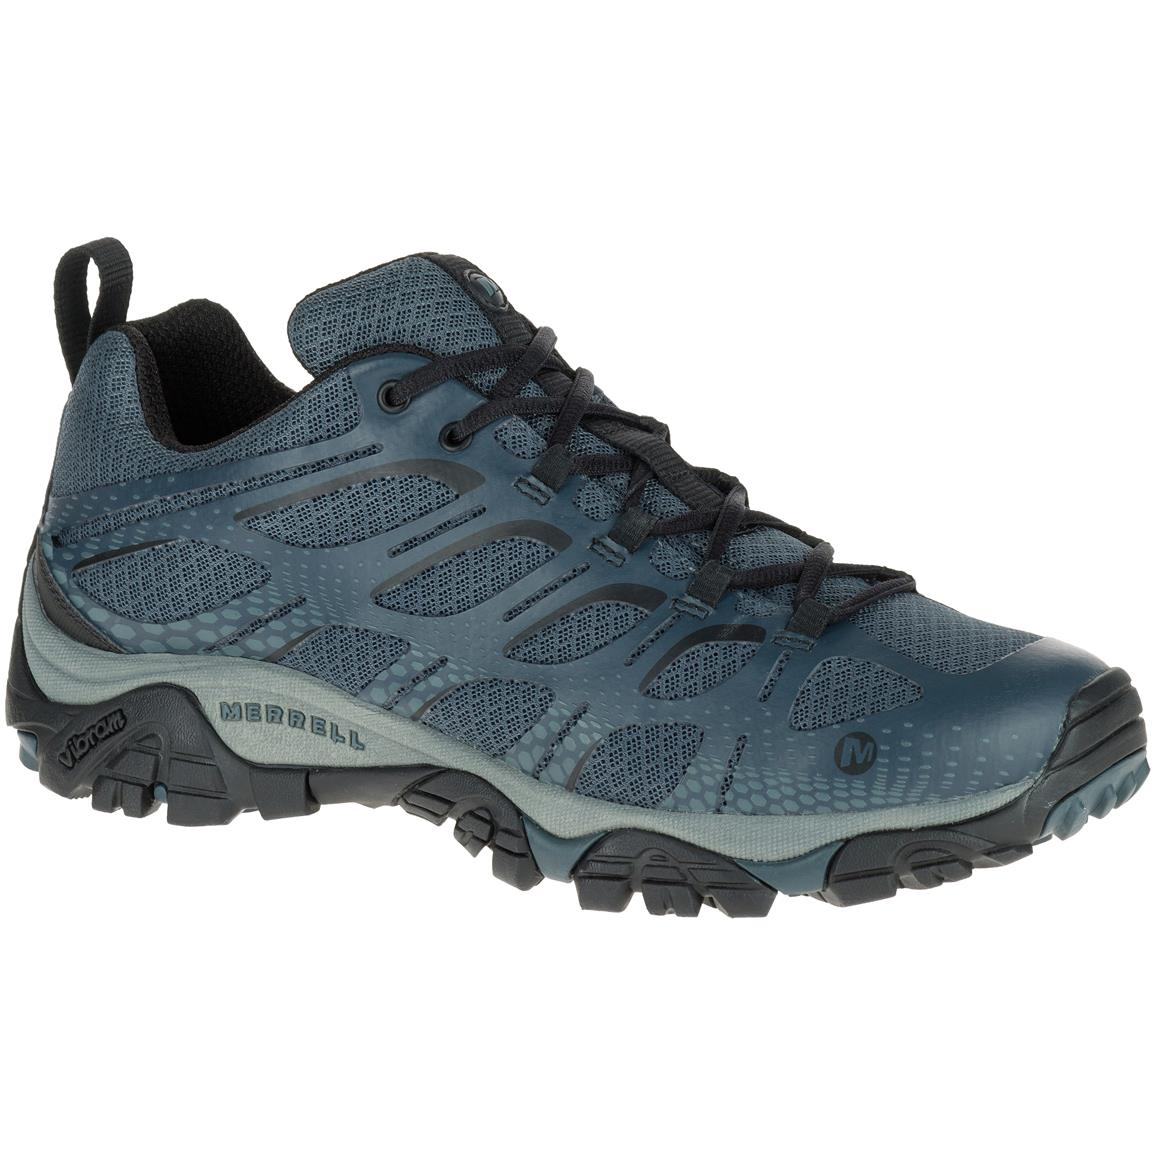 Merrell Men's Moab Edge Hiking Shoes, Dark Slate